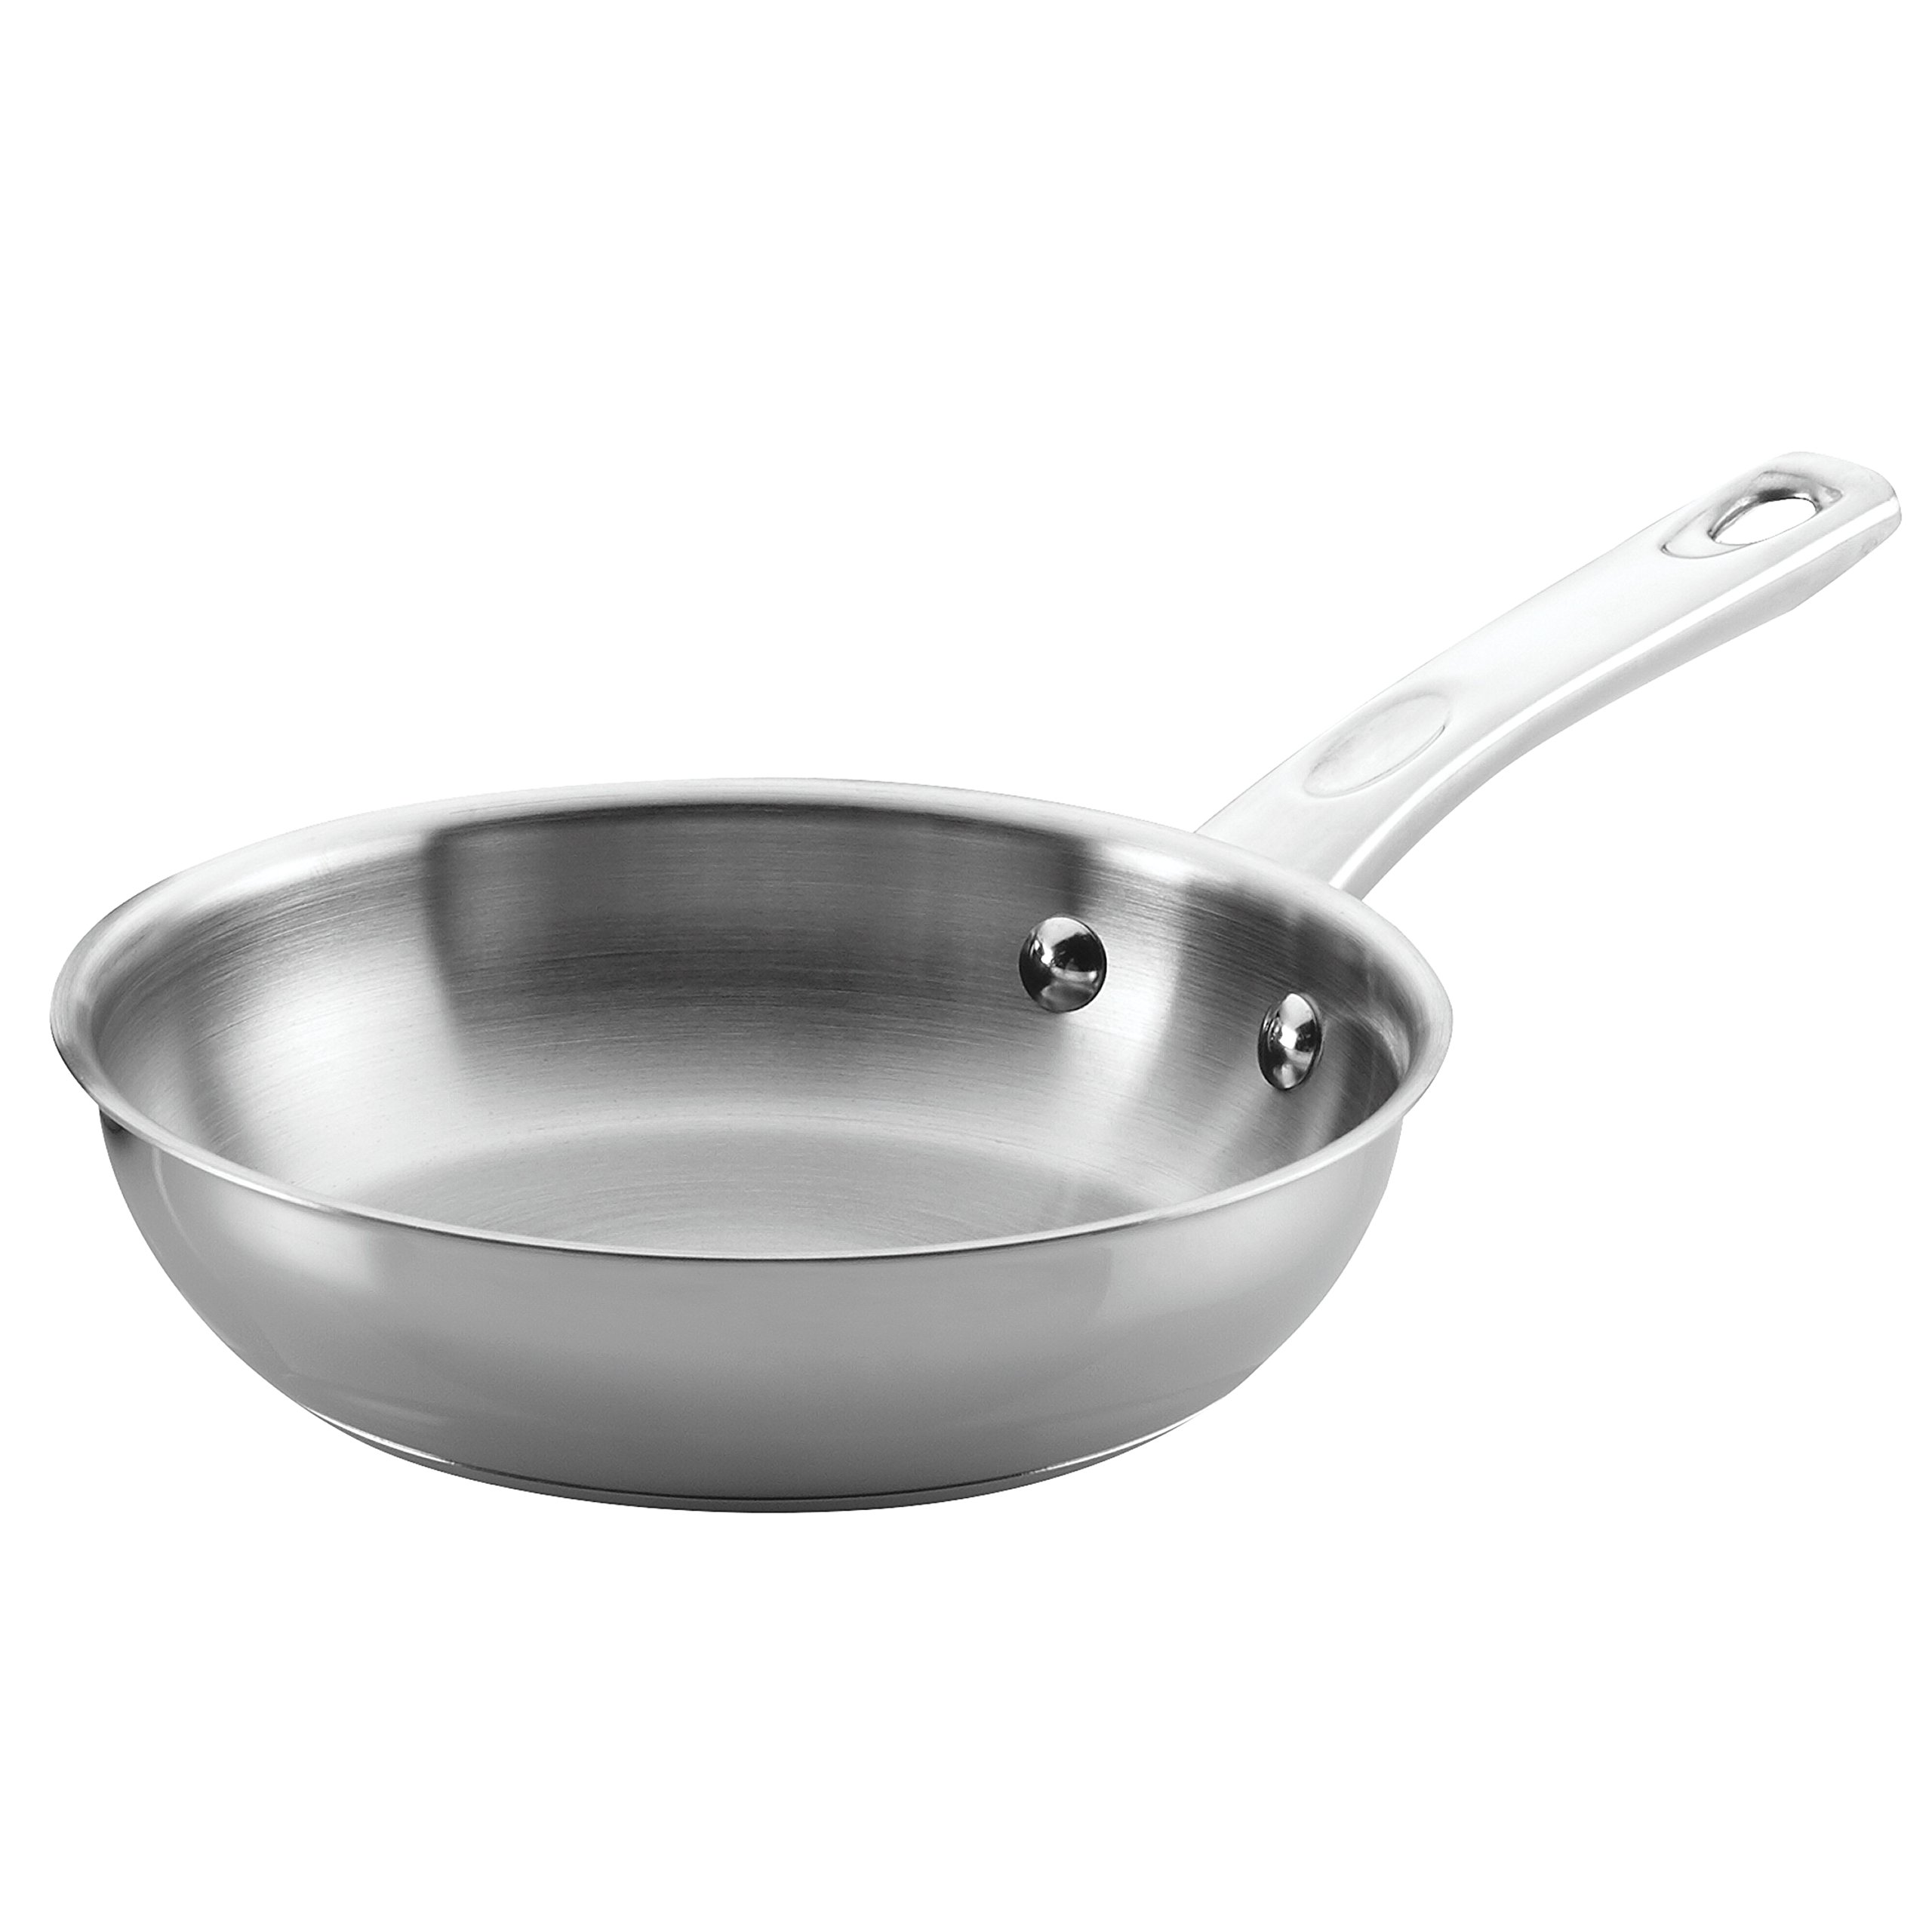 Ayesha Curry Home Collection Stainless Steel Skillet, 8.5-Inch